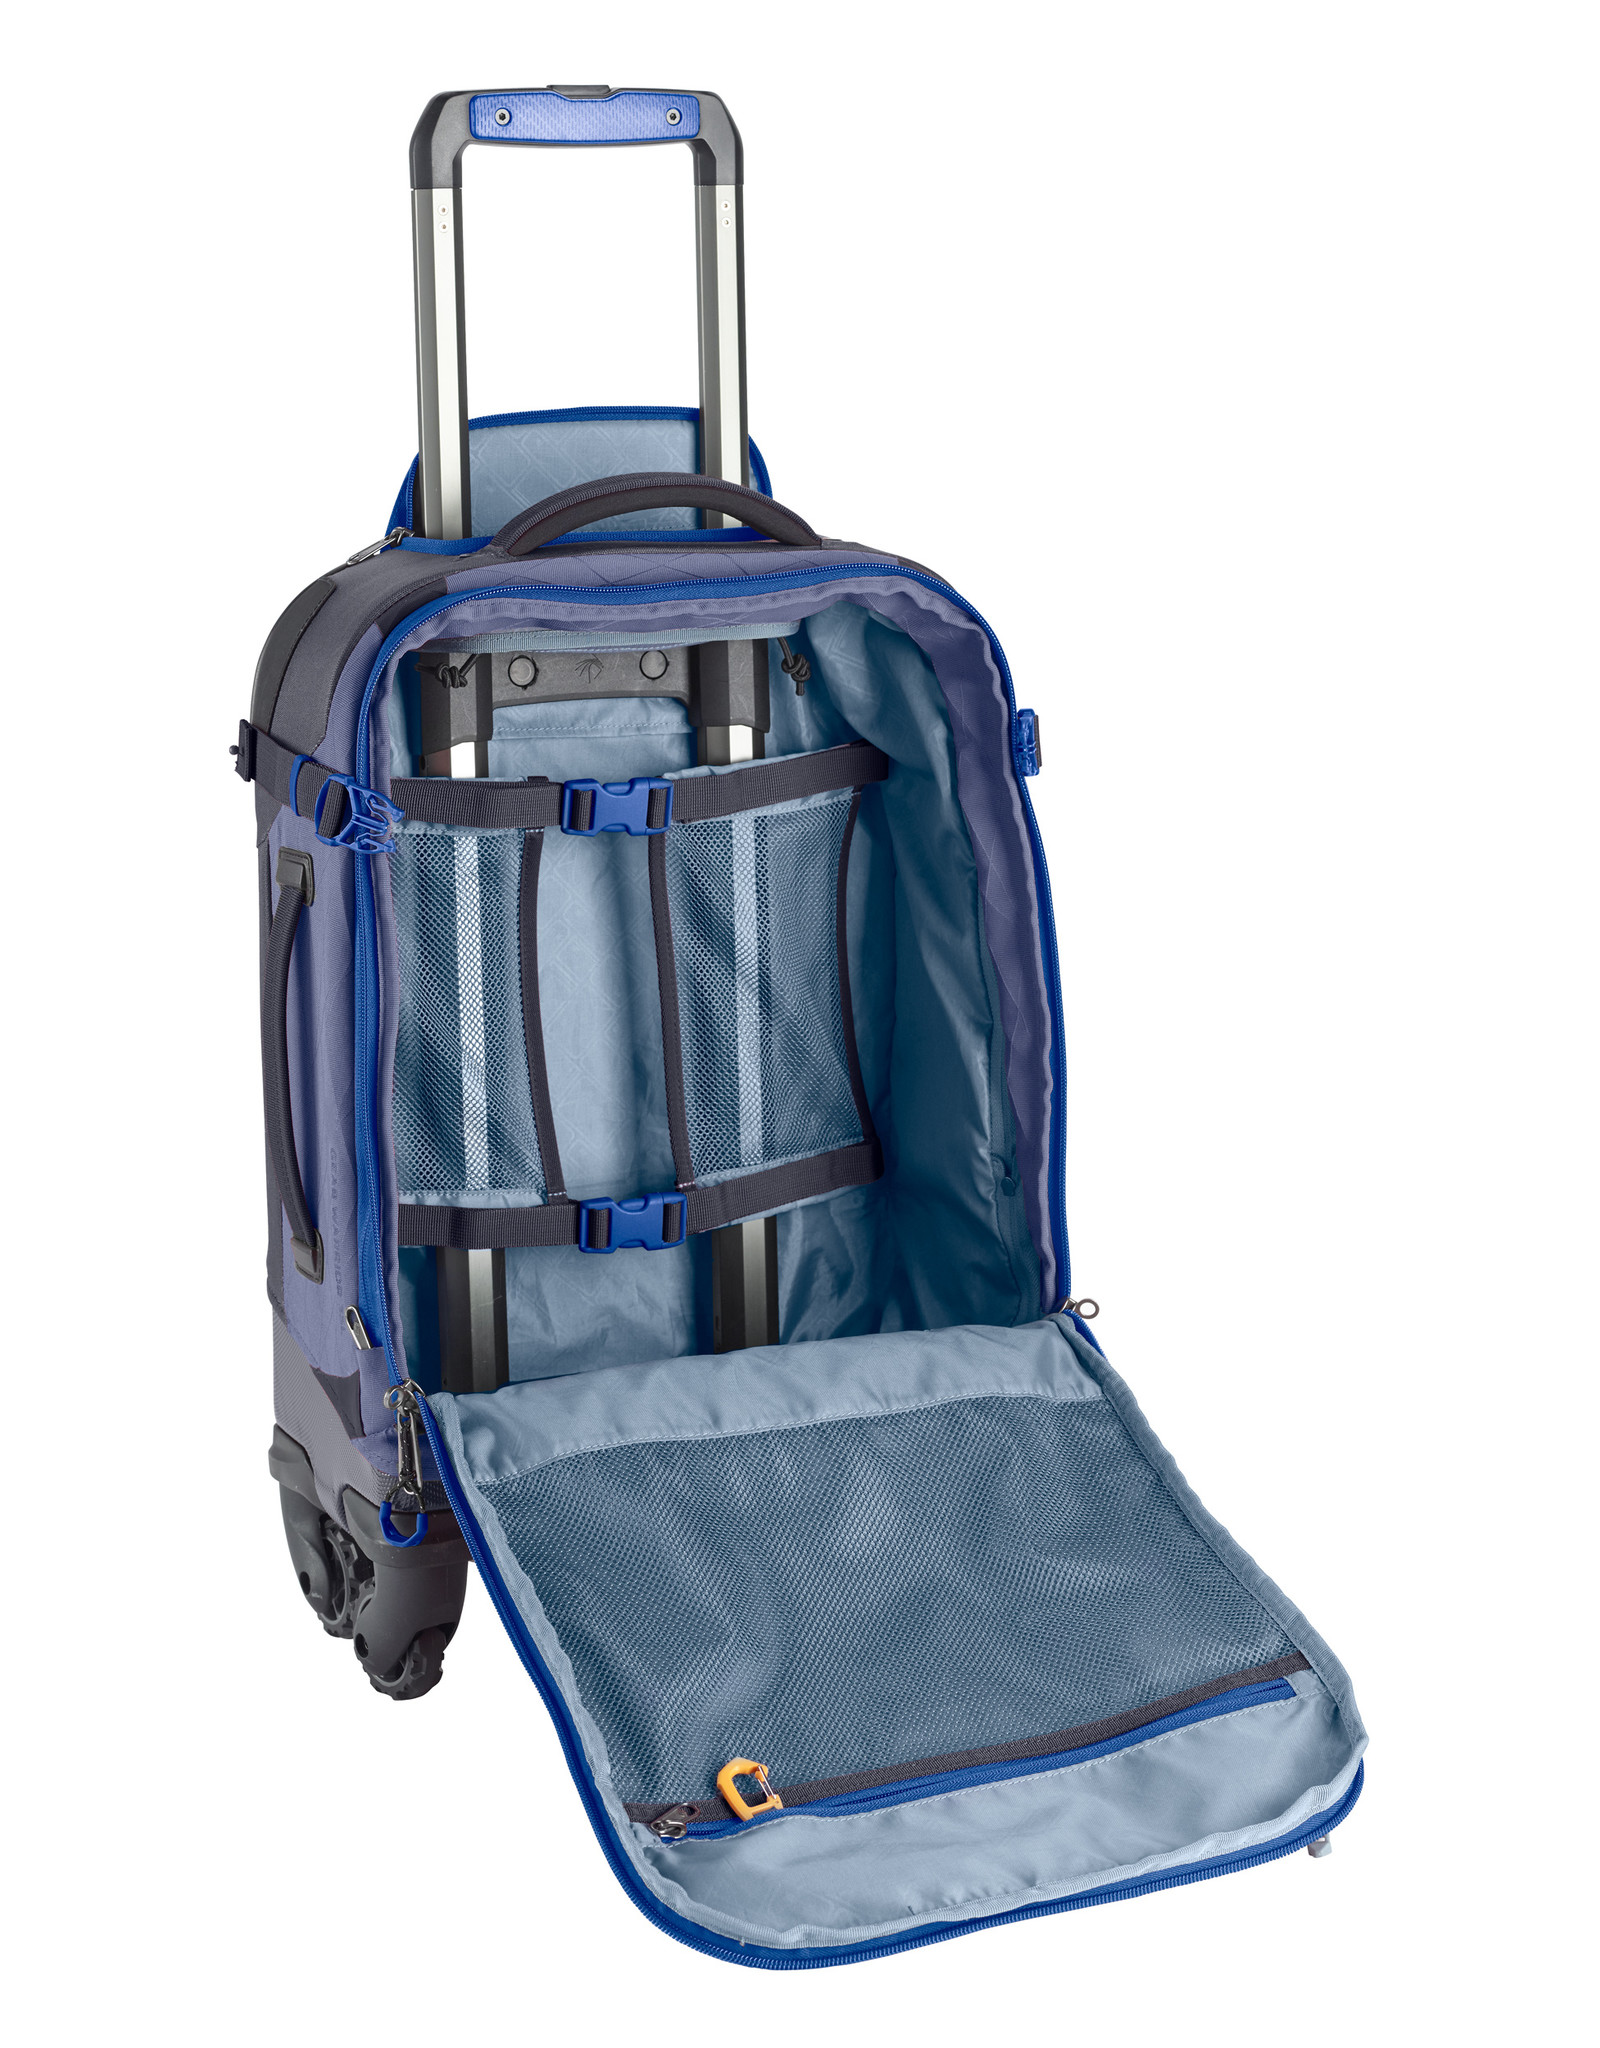 Eagle Creek Gear Warrior 4-Wheel Carry On